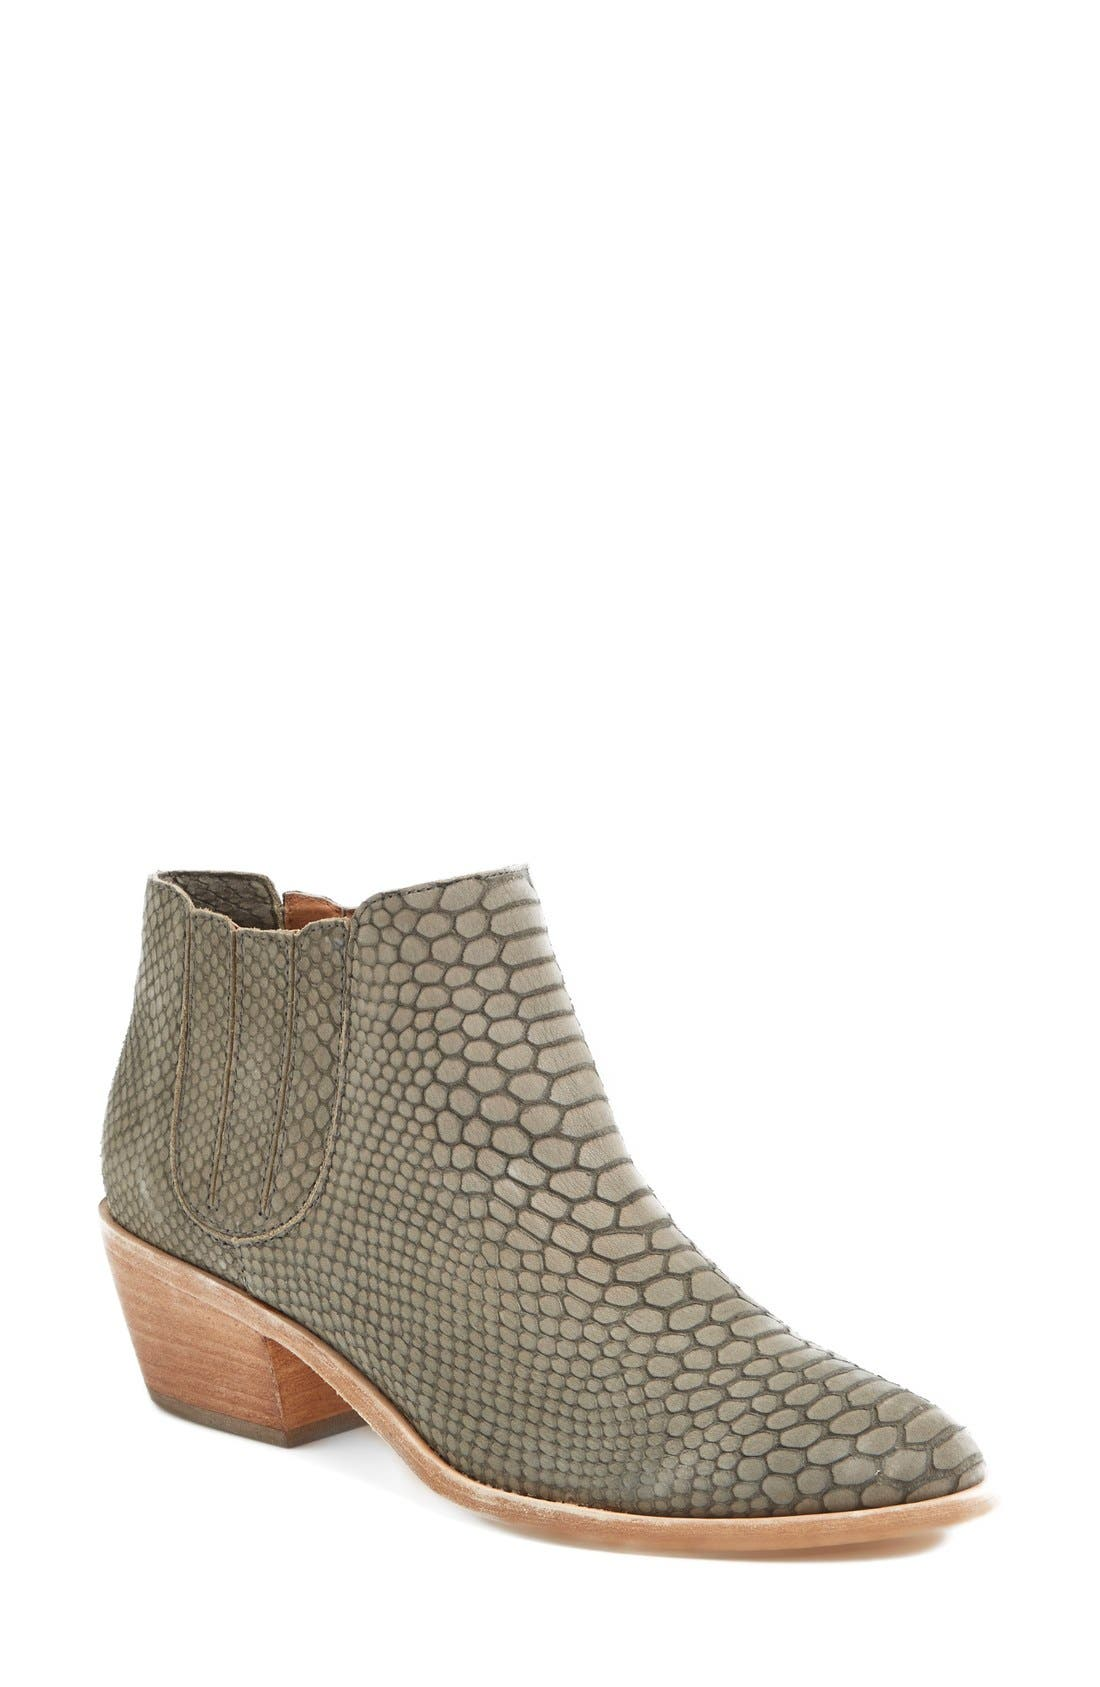 Alternate Image 1 Selected - Joie 'Barlow' Snake Embossed Leather Bootie (Women)